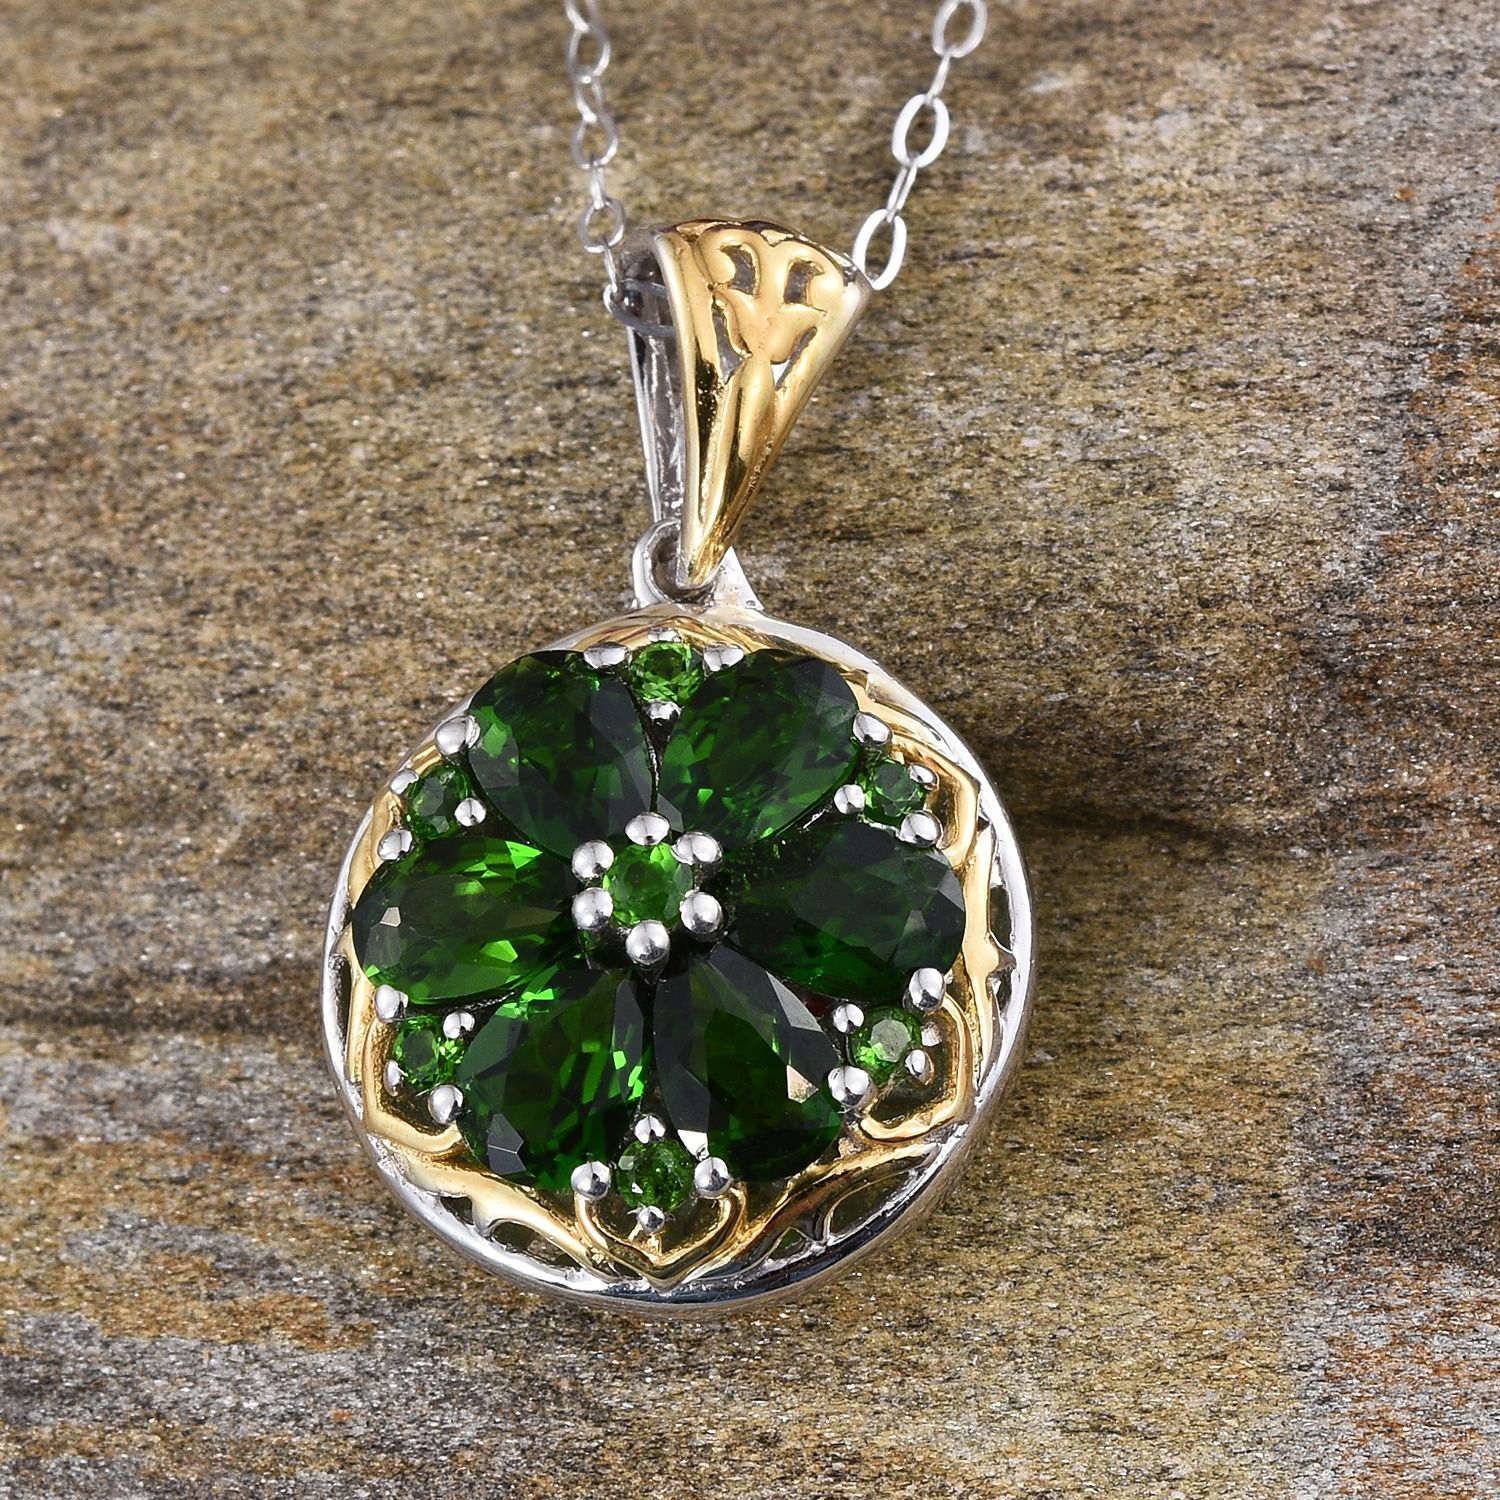 Sites jewelry stores in Russia: a selection of sites